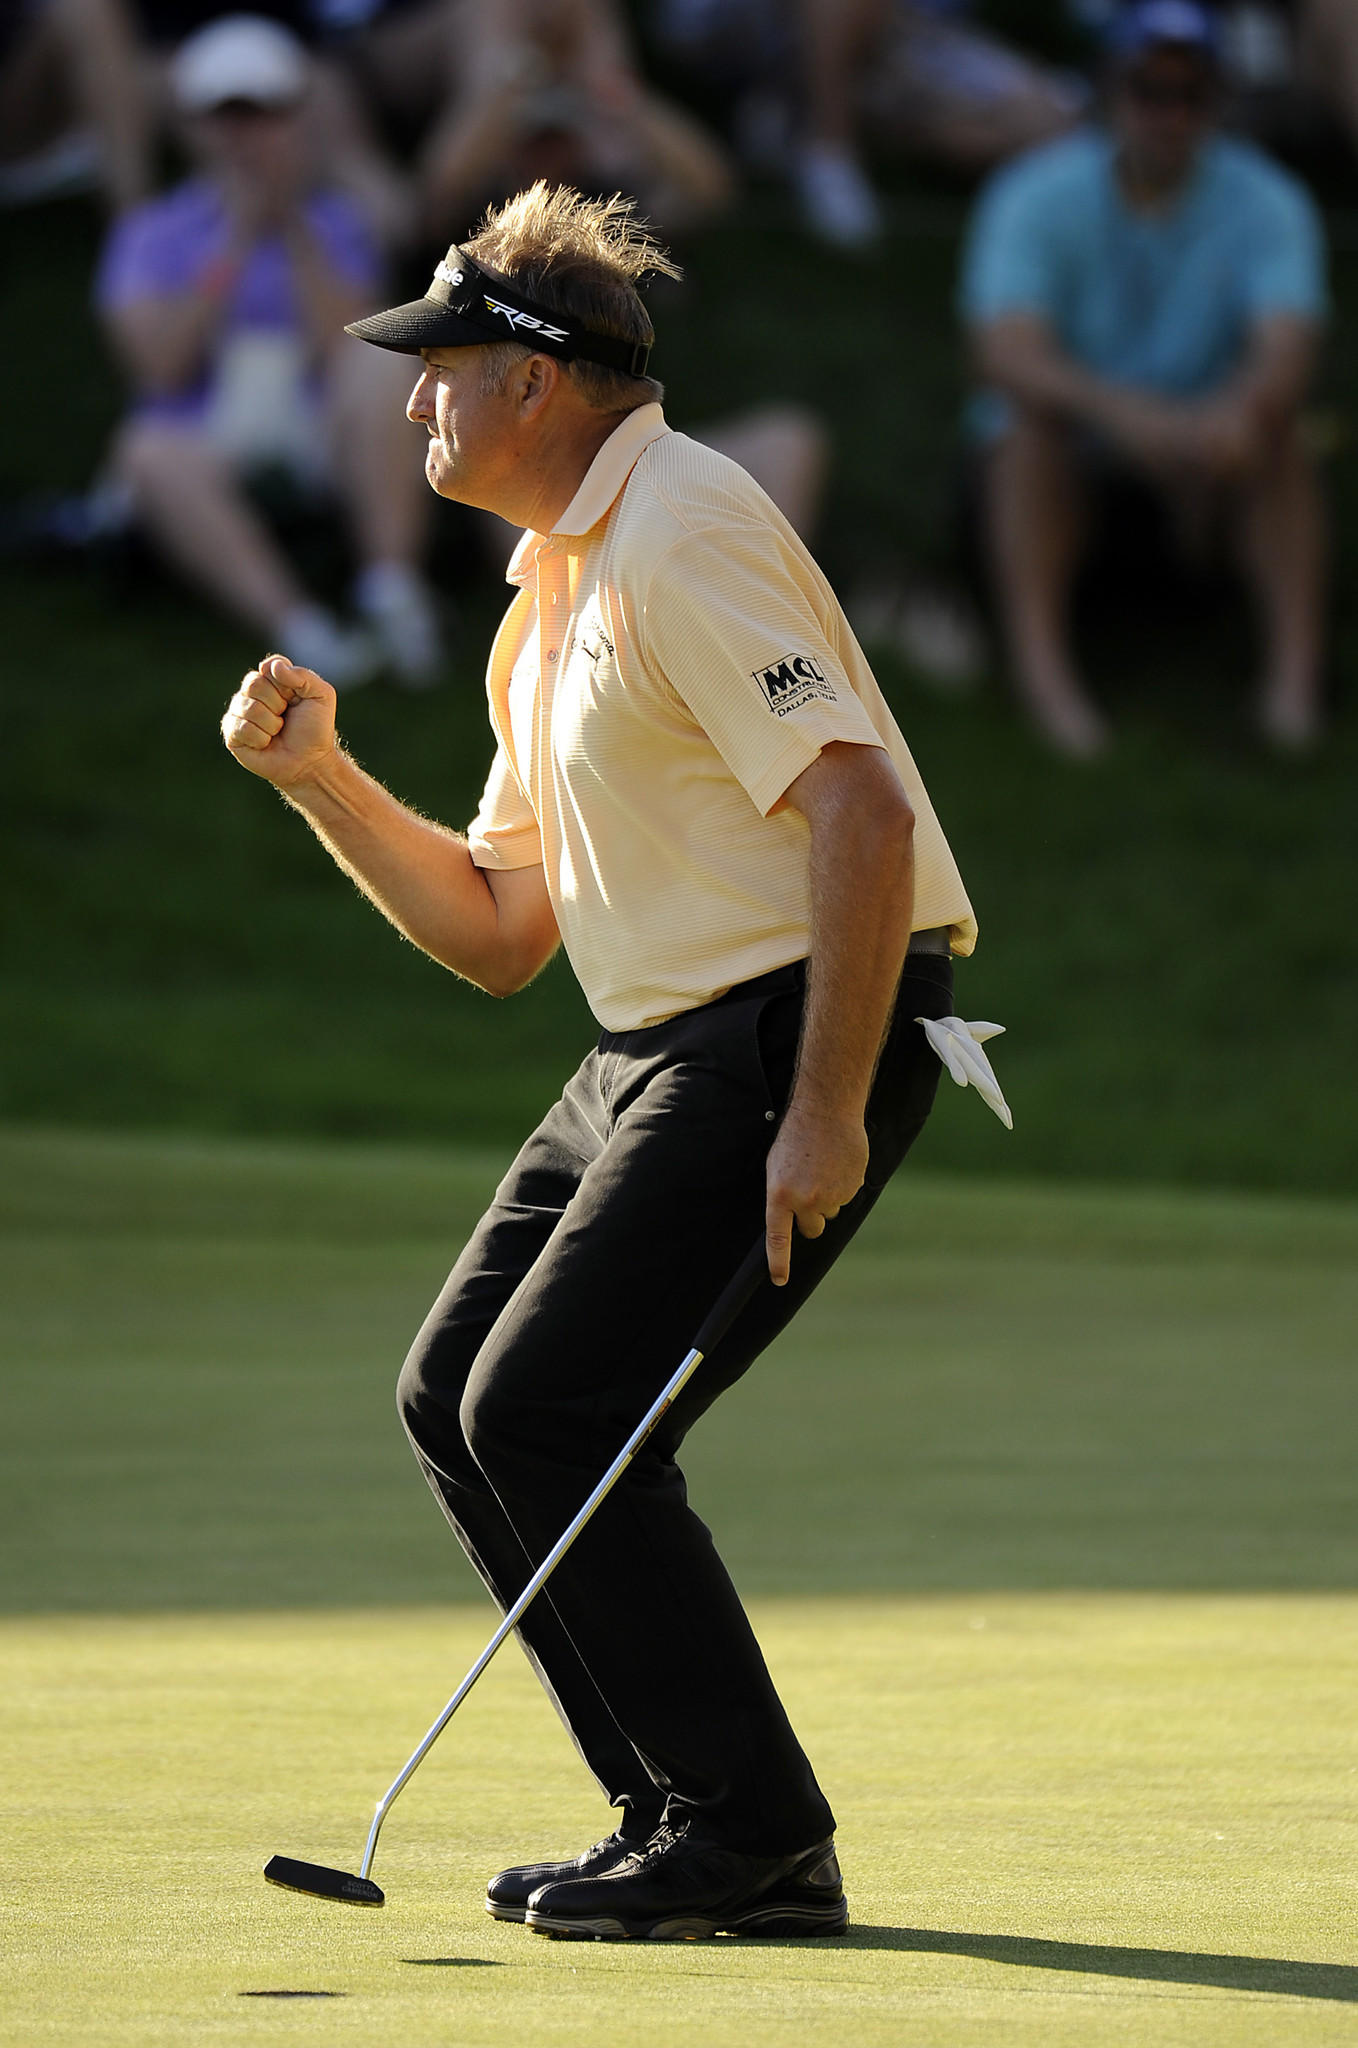 """Cromwell, CT 6/21/13 Ken Duke pumps his fist after sinking his winning putt from 2' 9"""" on the 18th green during the second playoff hole with Chris Stroud during the Final round of the 2013 Travelers Championship at the TPC River Highlands in Cromwell Sunday. Photo by JOHN WOIKE   woike@courant.com hc-photo-travelers-mainbar-0624"""